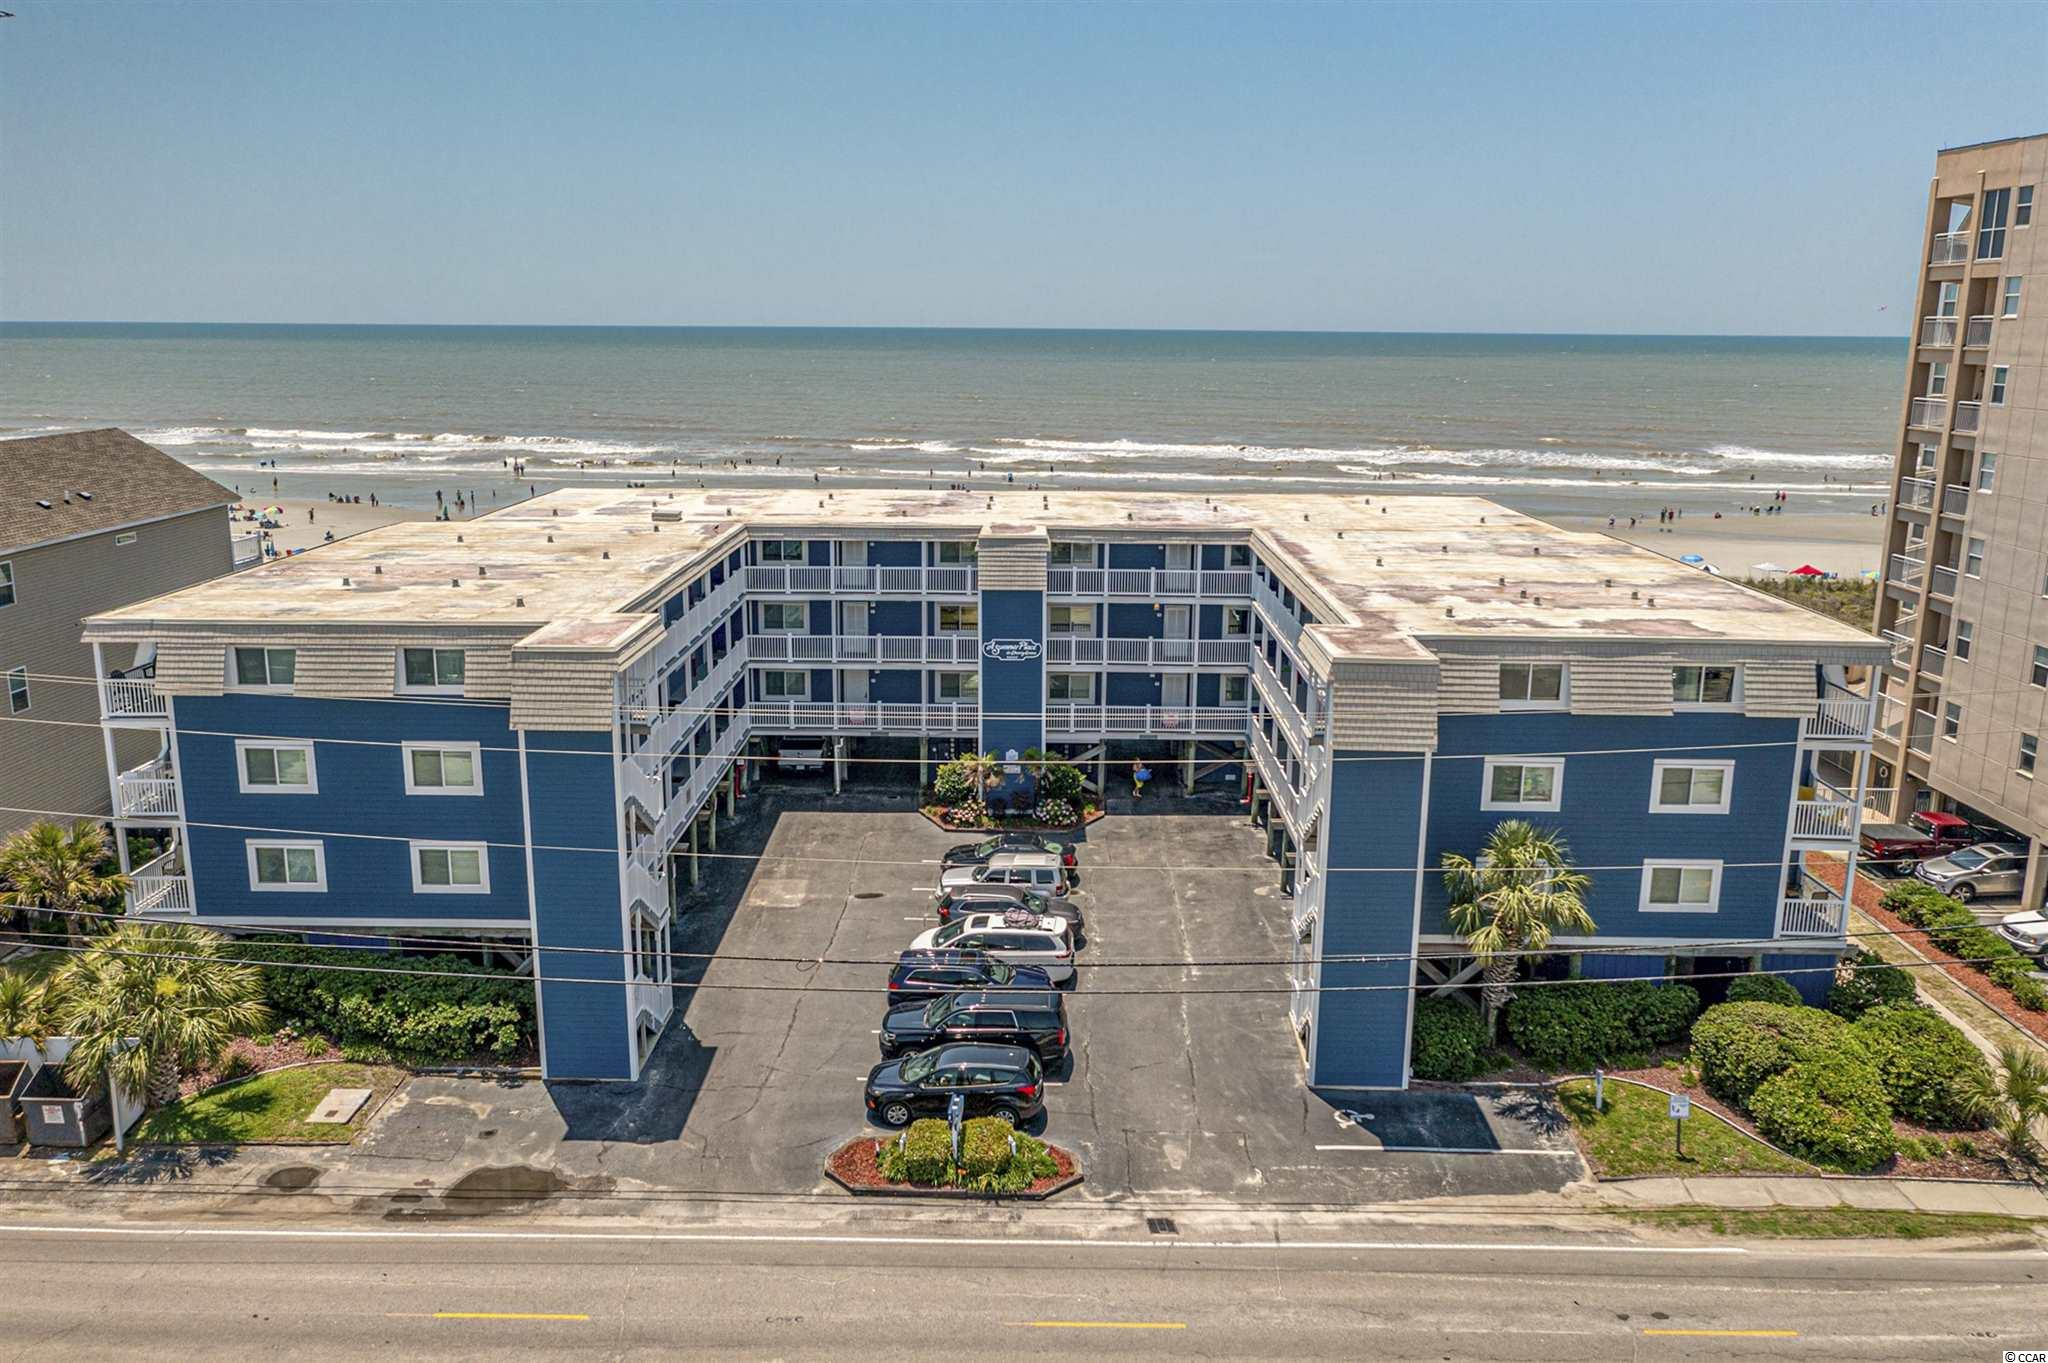 Ocean front in Cherry Grove!  This building has been completely redone and the unit is immaculate and comes fully furnished excluding a few personal items.  All new hardy board siding, new windows and sliding doors and more.  HVAC was replaced in 2020.  Enjoy the best views of the ocean from this top floor unit located just a short golf cart ride from Cherry Grove pier and all the restaurant's and shopping at Sea Mountain Highway.  This unit features outside storage on the ground floor which makes chairs and beach supplies easy to transport to the beach.  Building features an ocean front pool and does allow golf carts and pets.  Easy access to Shopping, entertainment golf and all that the Grand Strand has to offer.